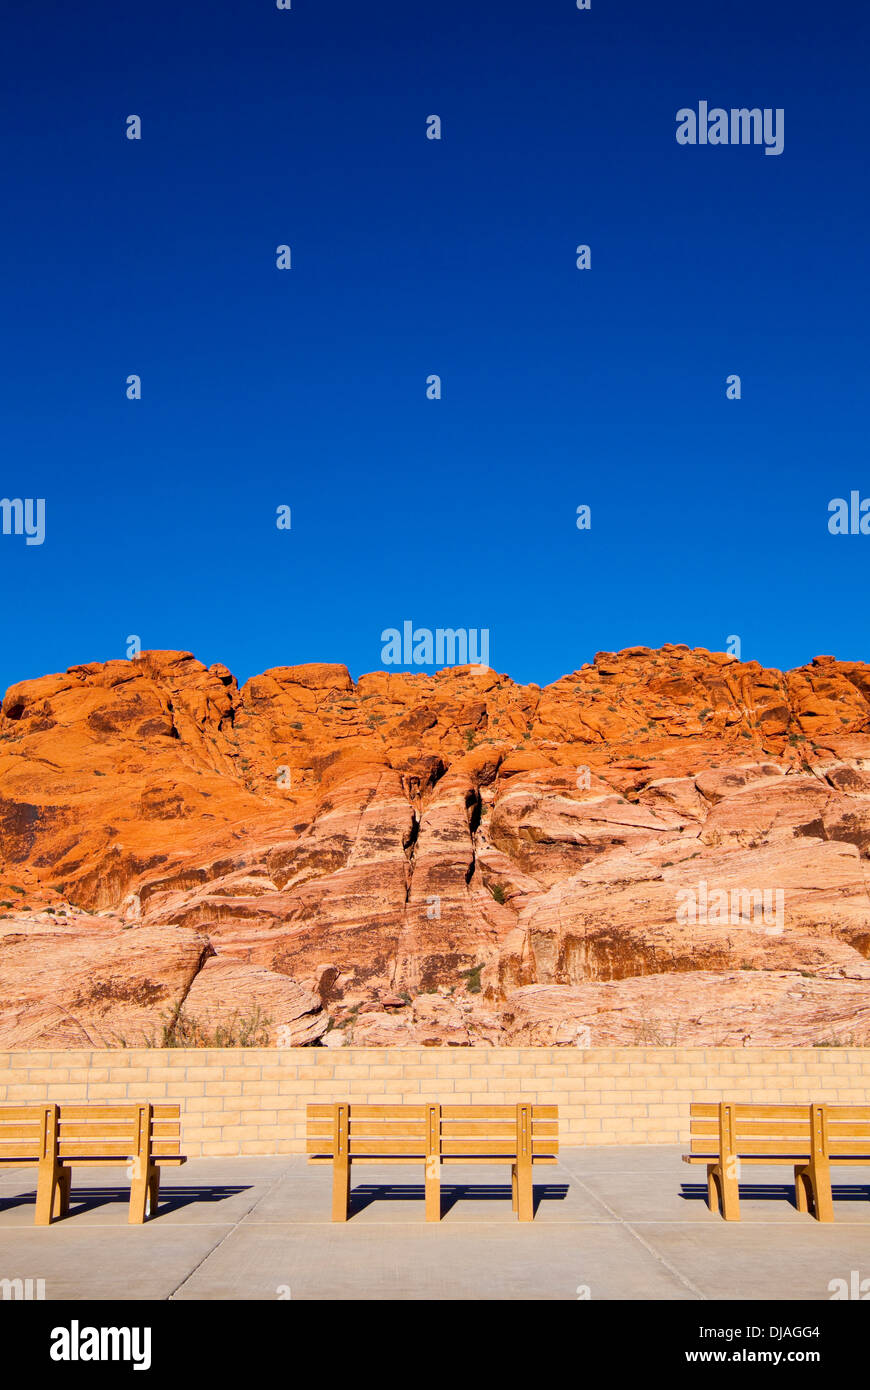 Park benches facing Red Rock Canyon, Nevada, United States - Stock Image